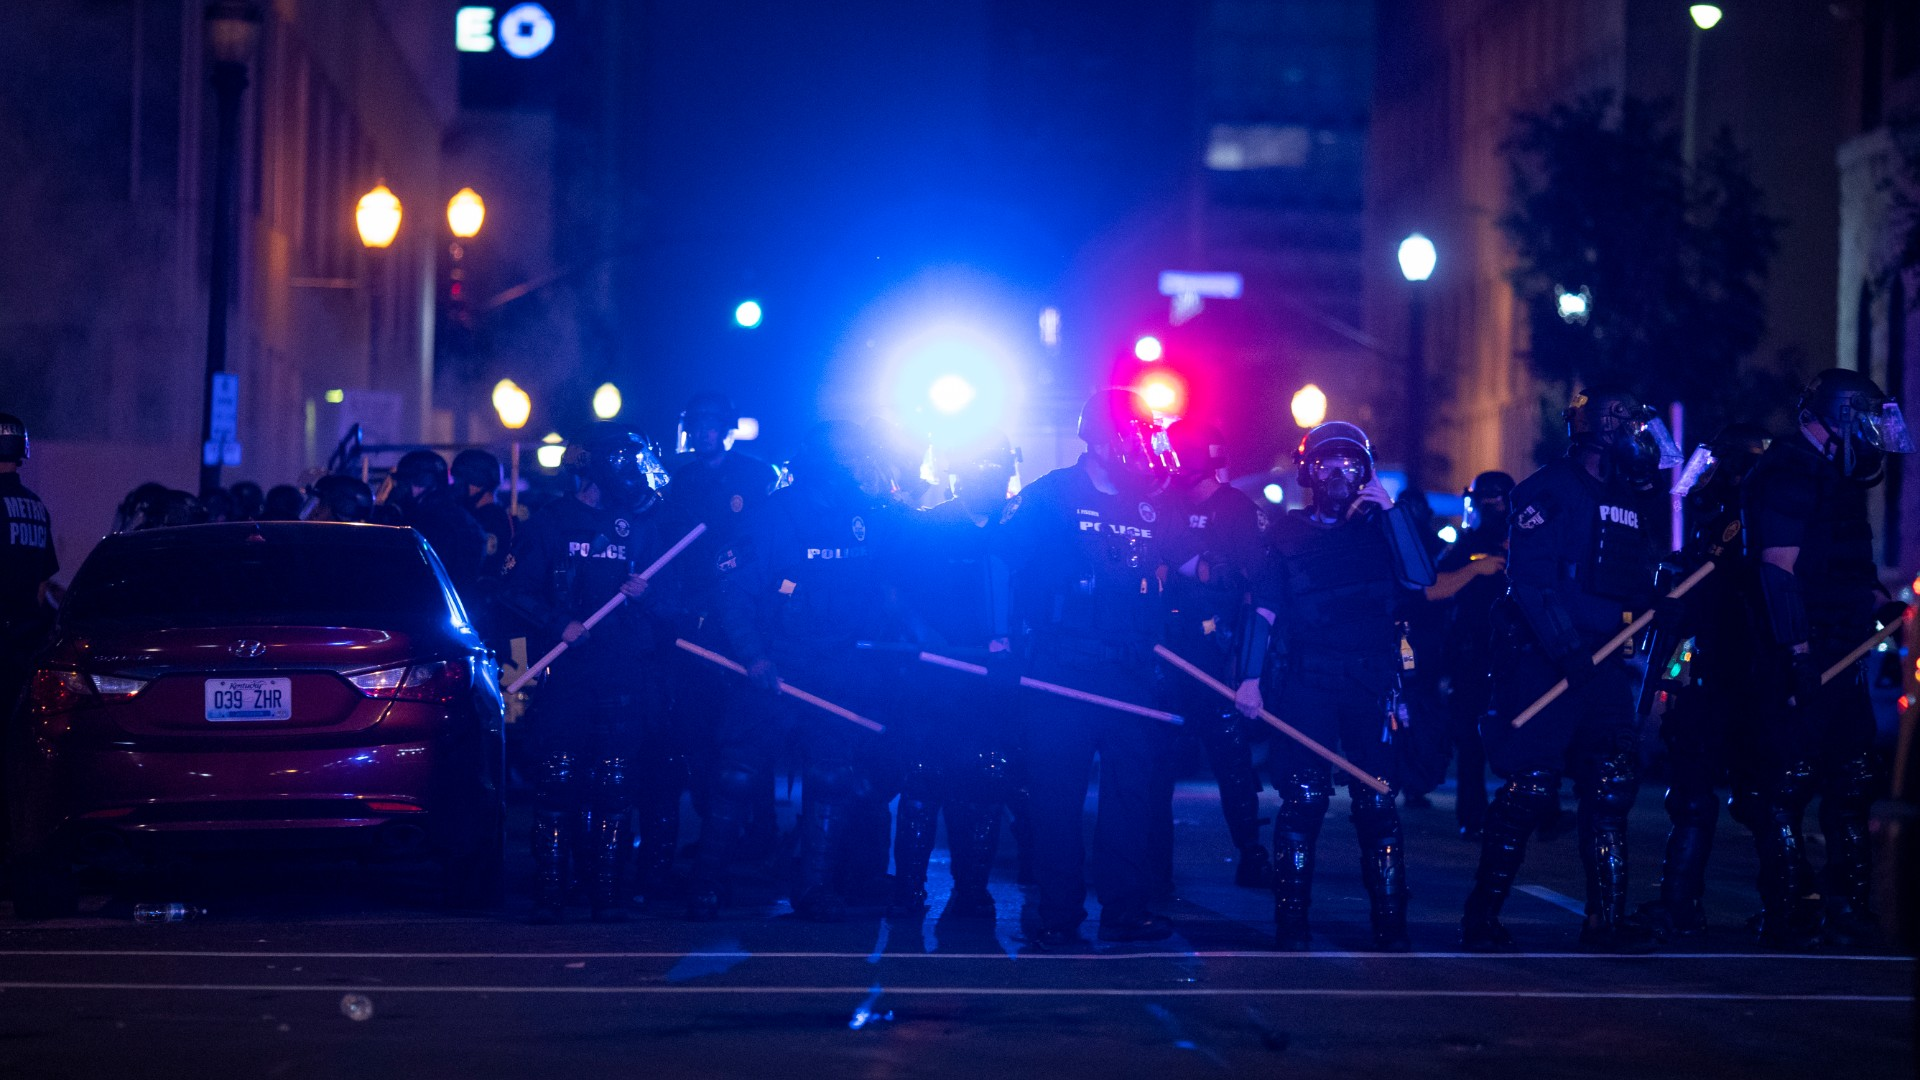 Police in riot gear stand in formation during protests on May 29, 2020 in Louisville, Kentucky. Protests have erupted after recent police-related incidents resulting in the deaths of African-Americans Breonna Taylor in Louisville and George Floyd in Minneapolis, Minnesota. (Brett Carlsen/Getty Images)